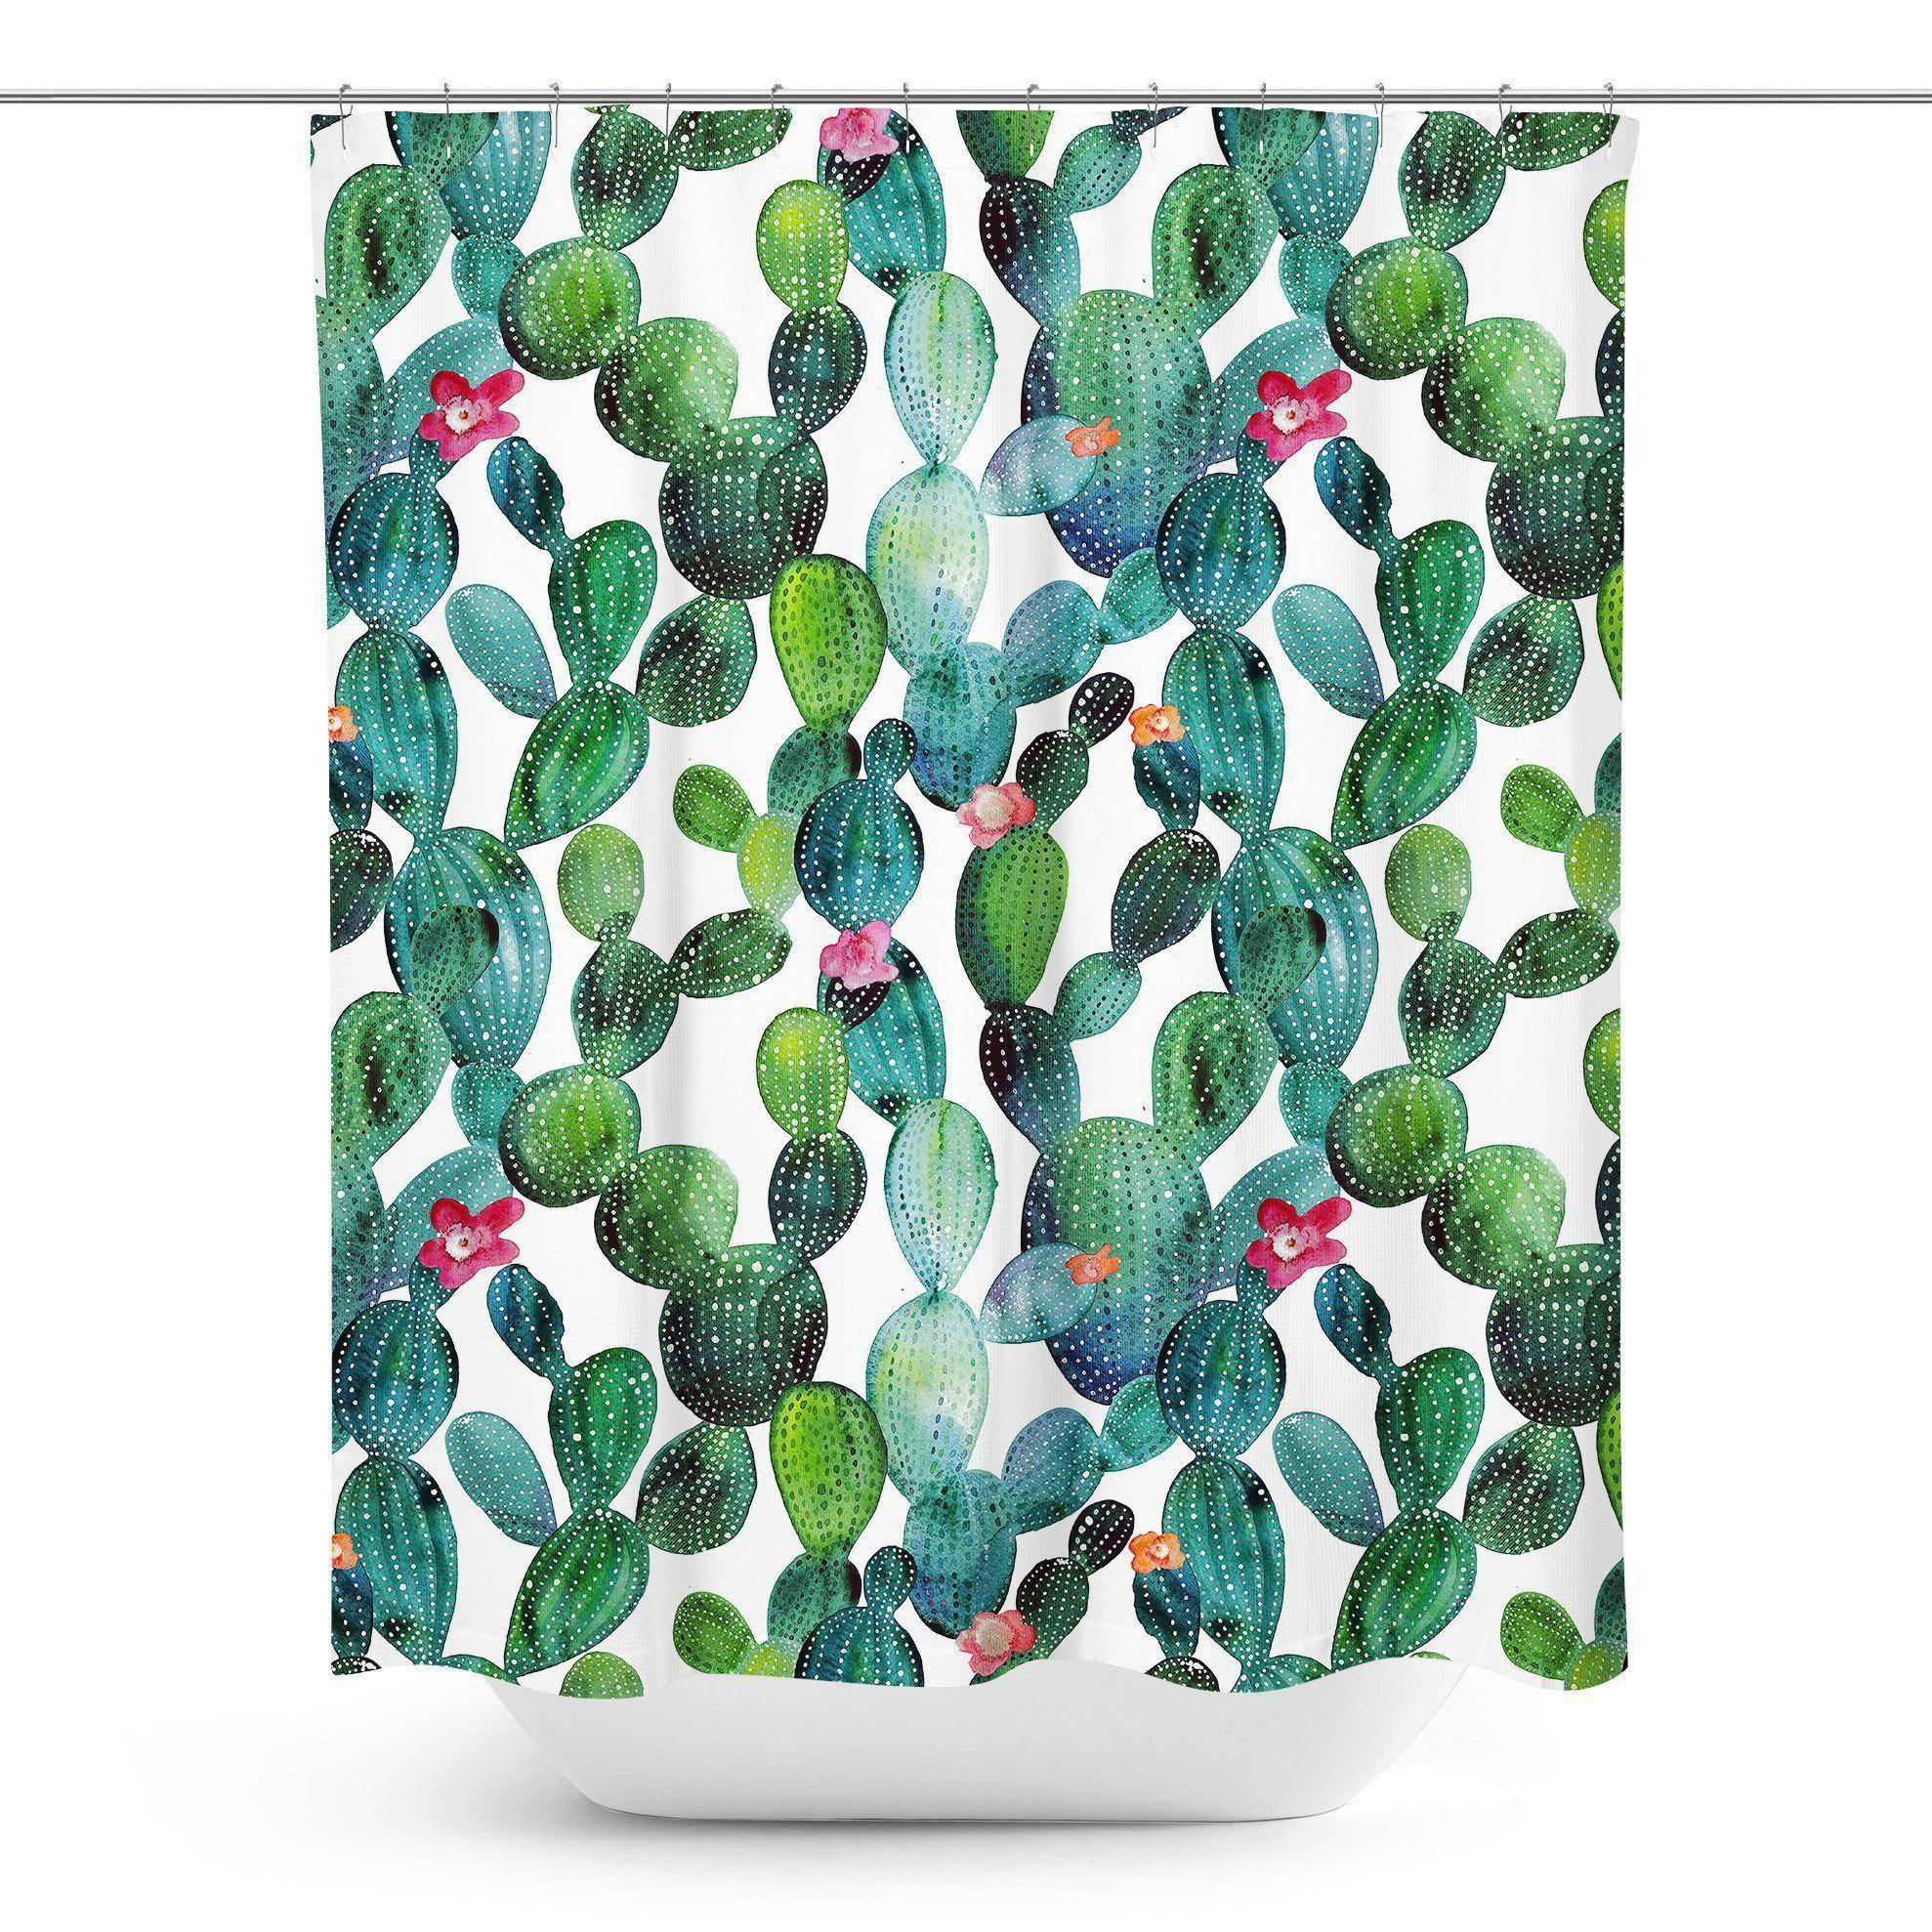 Cactus Shower Curtain - Shower Curtains - W.FRANCIS